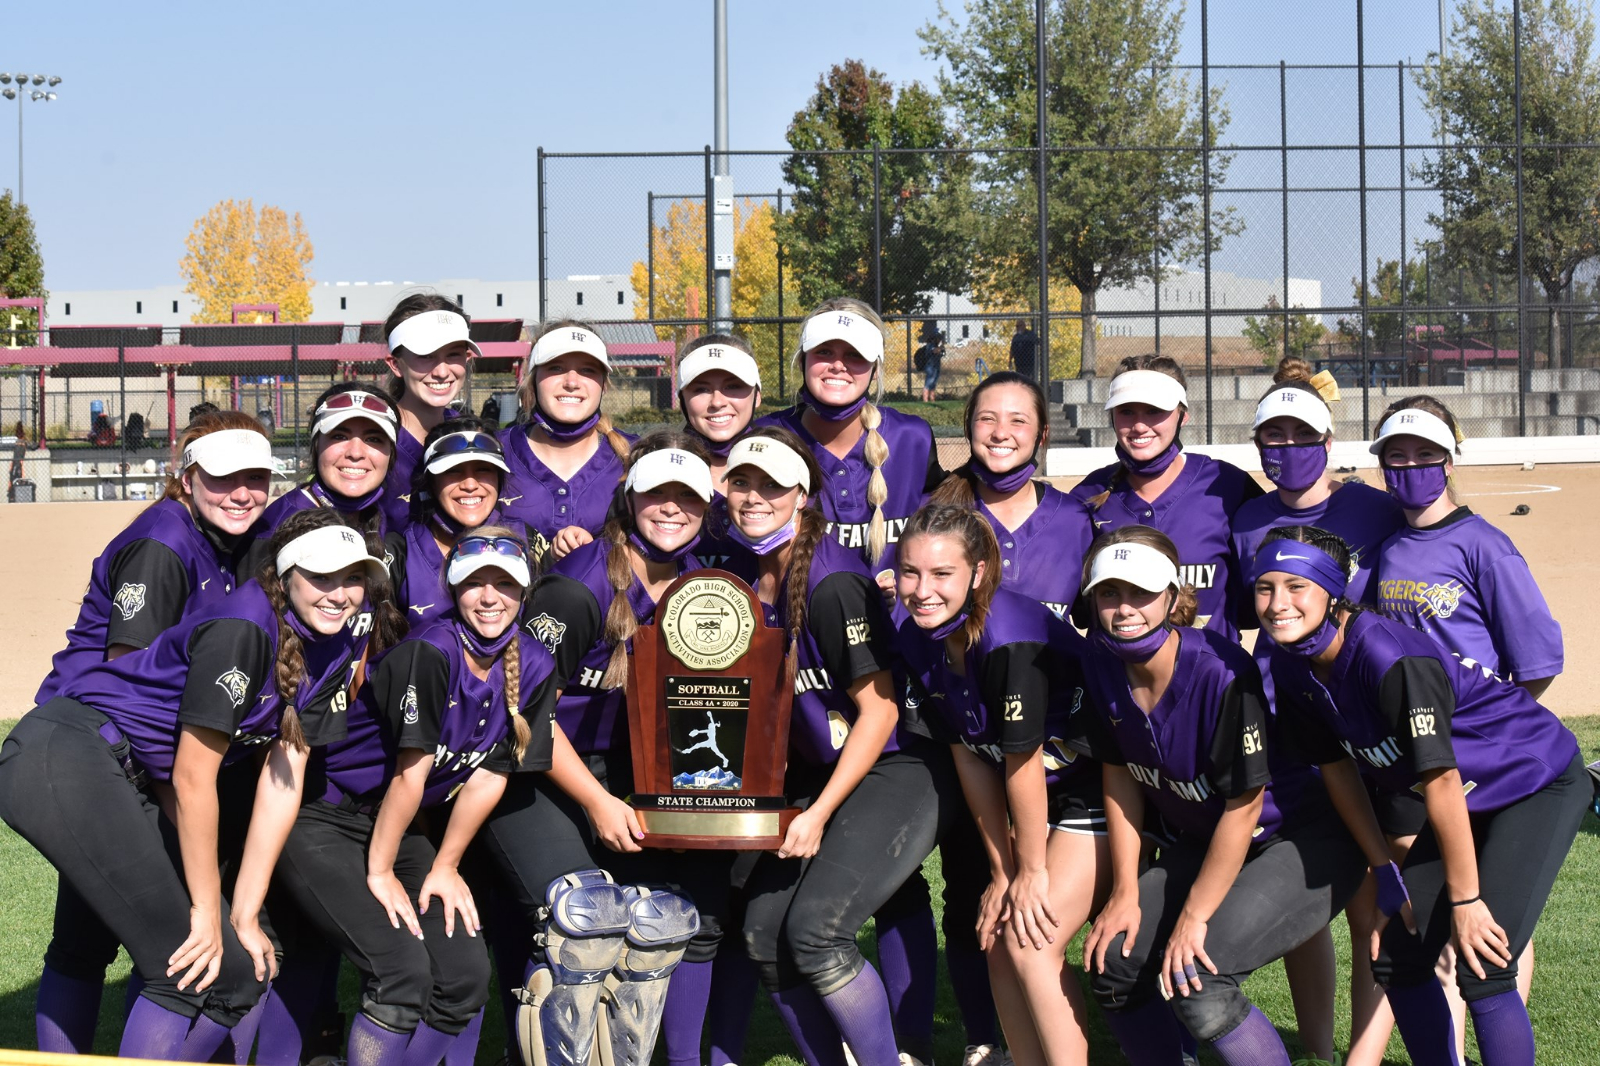 Softball: State Chamionship vs. Mead (10/10) — Photos by Craig Caviness